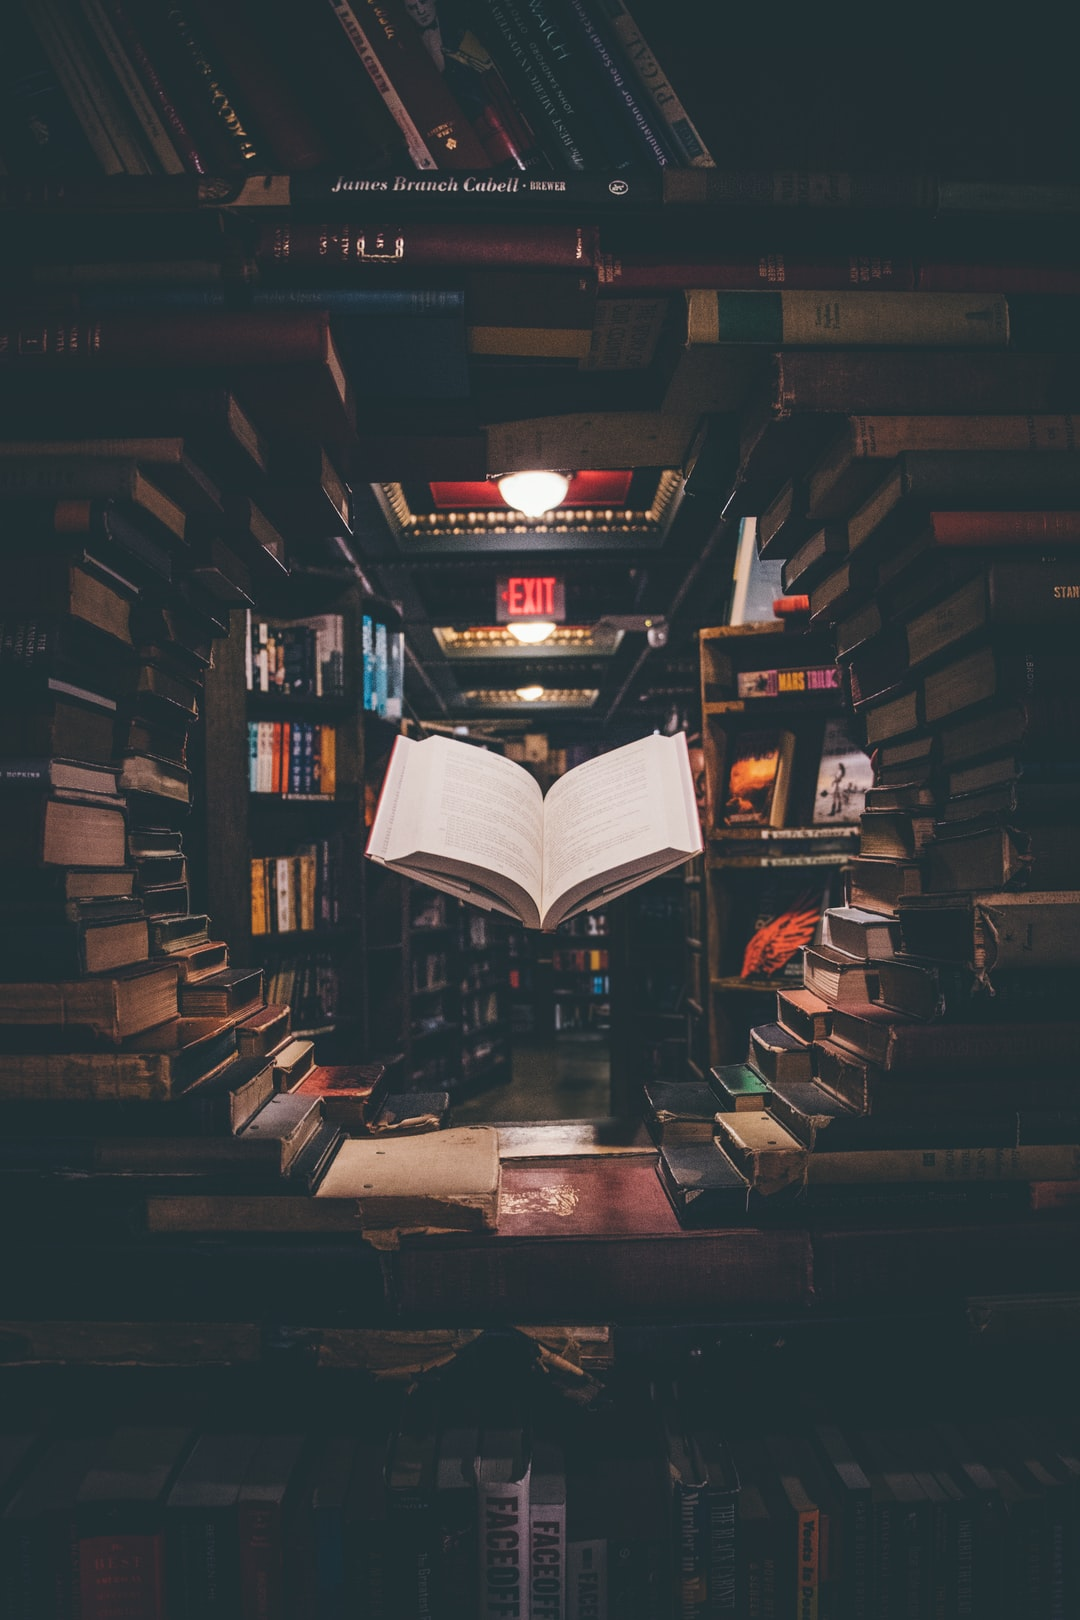 900 Book Images Download Hd Pictures Photos On Unsplash